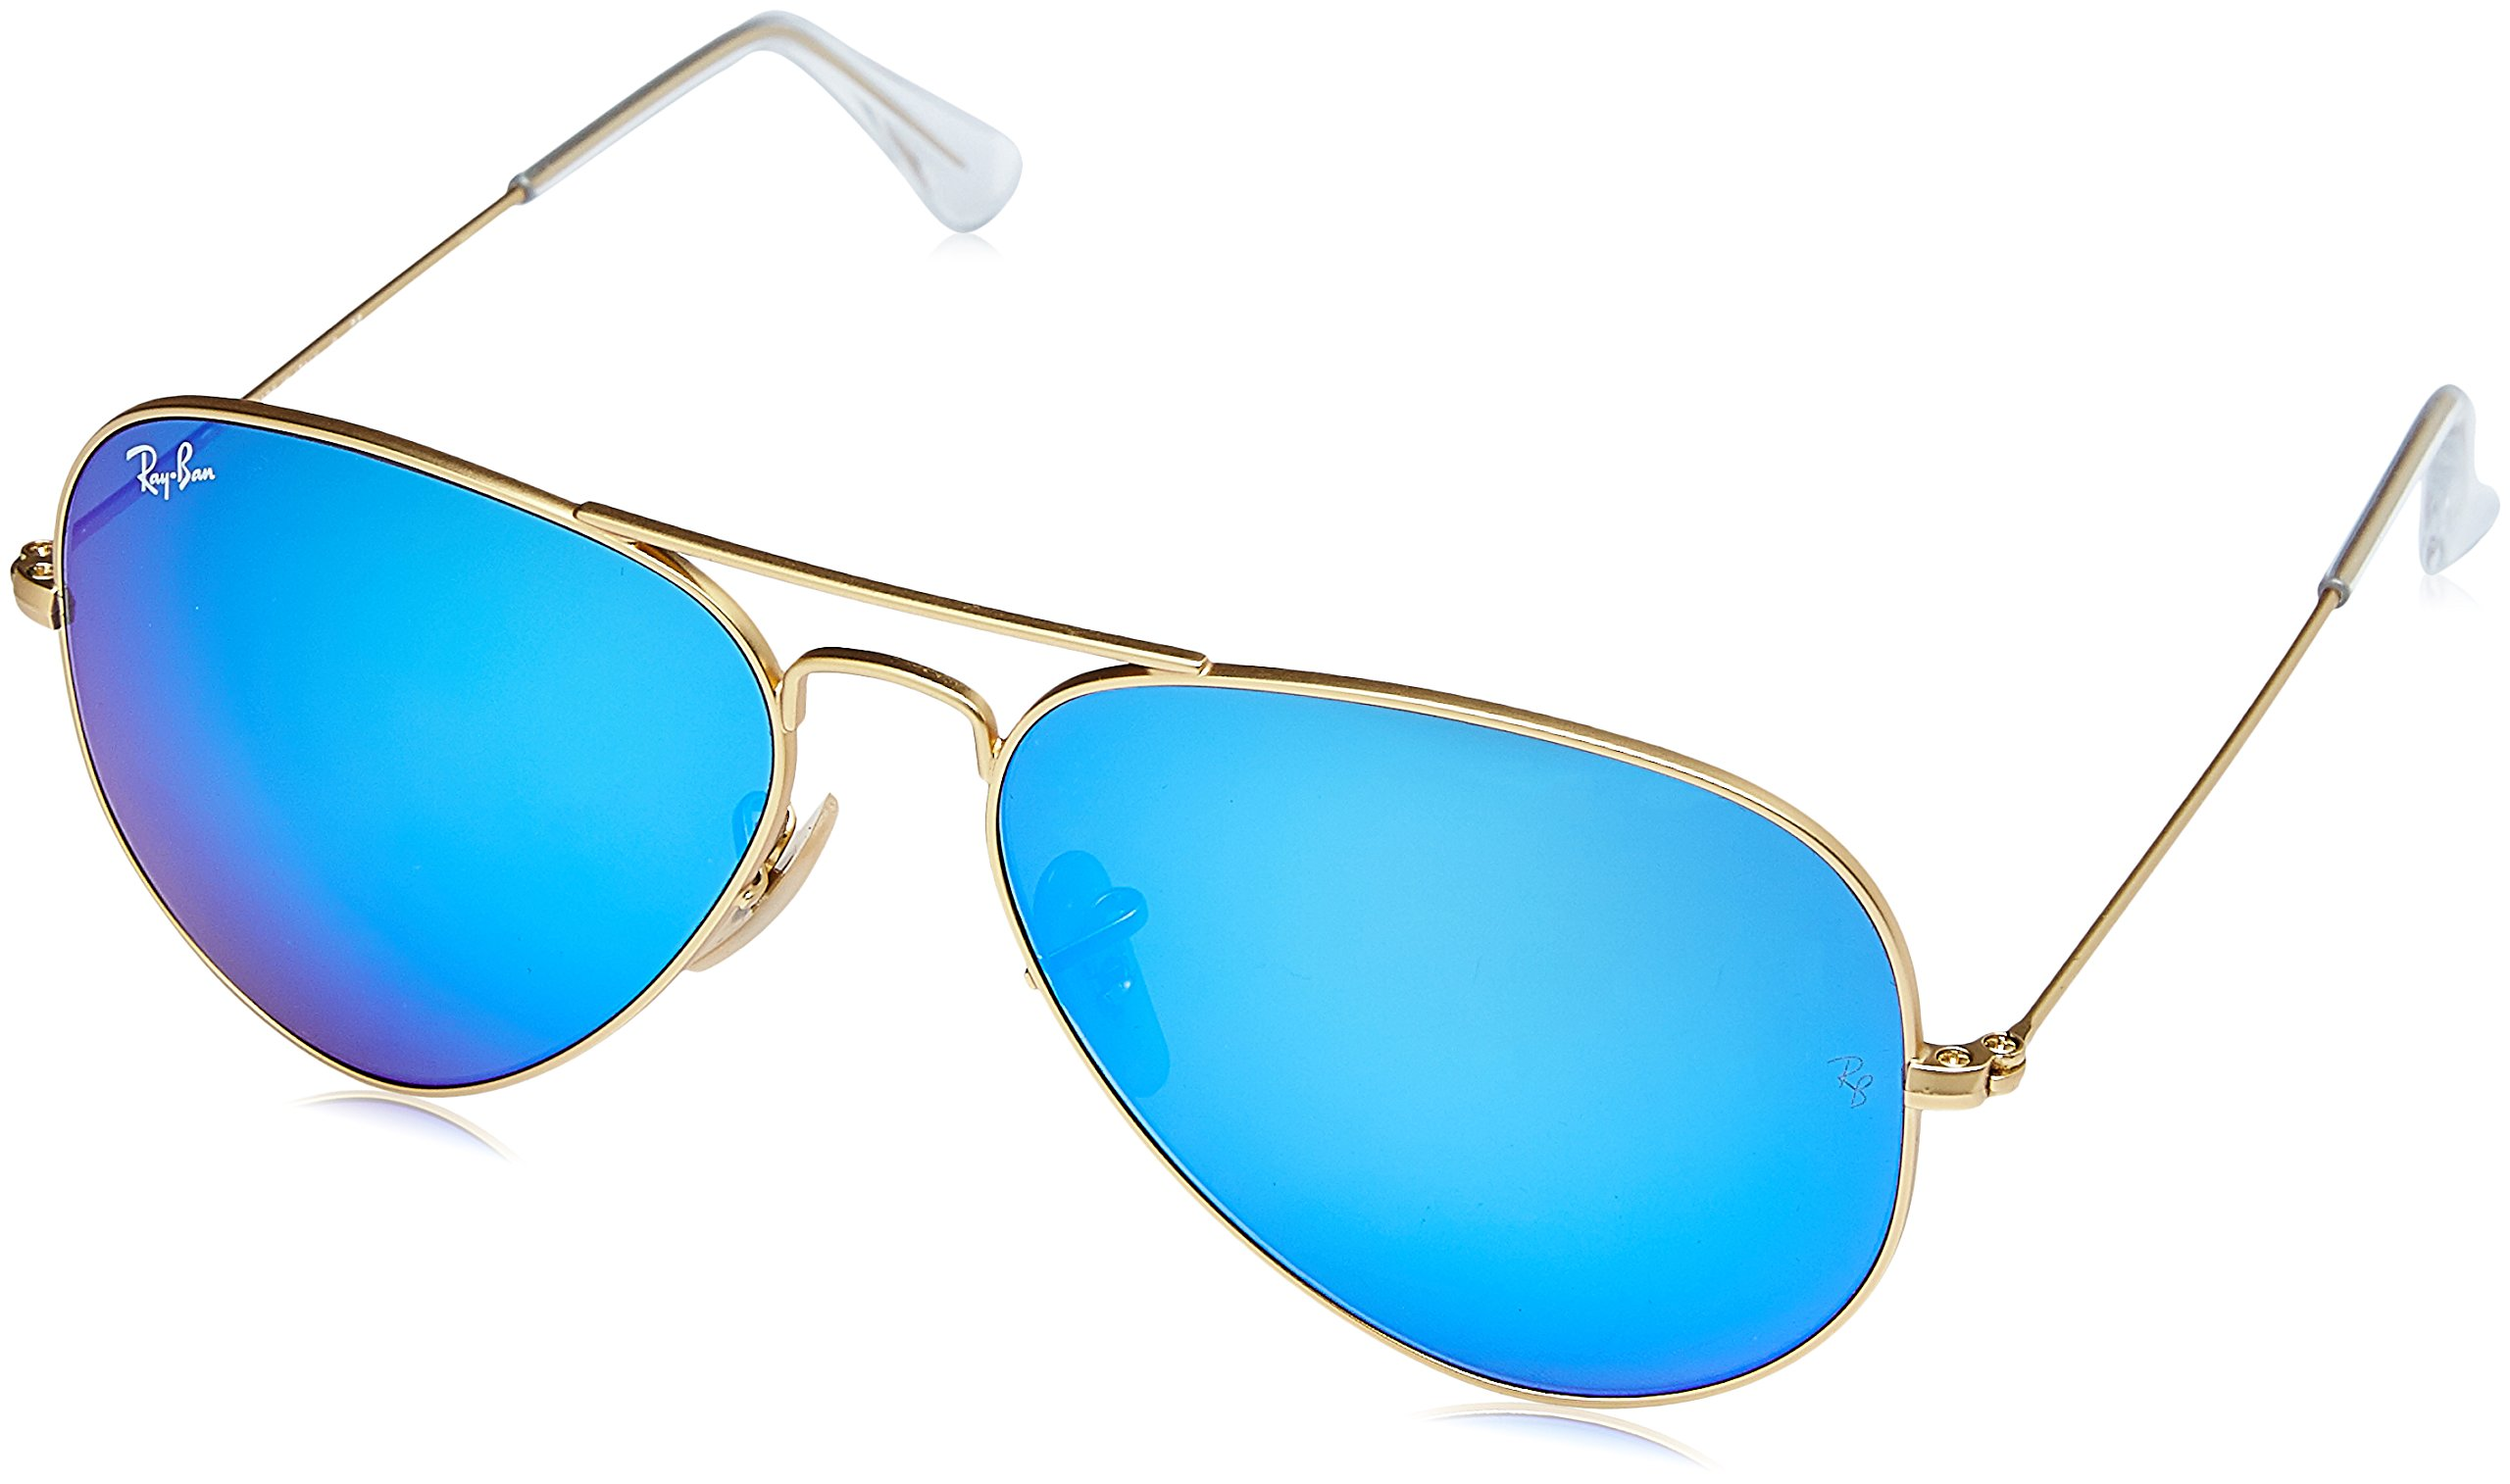 Ray-Ban RB3025 Aviator Flash Mirrored Sunglasses, Matte Gold/Blue Flash, 58 mm by Ray-Ban